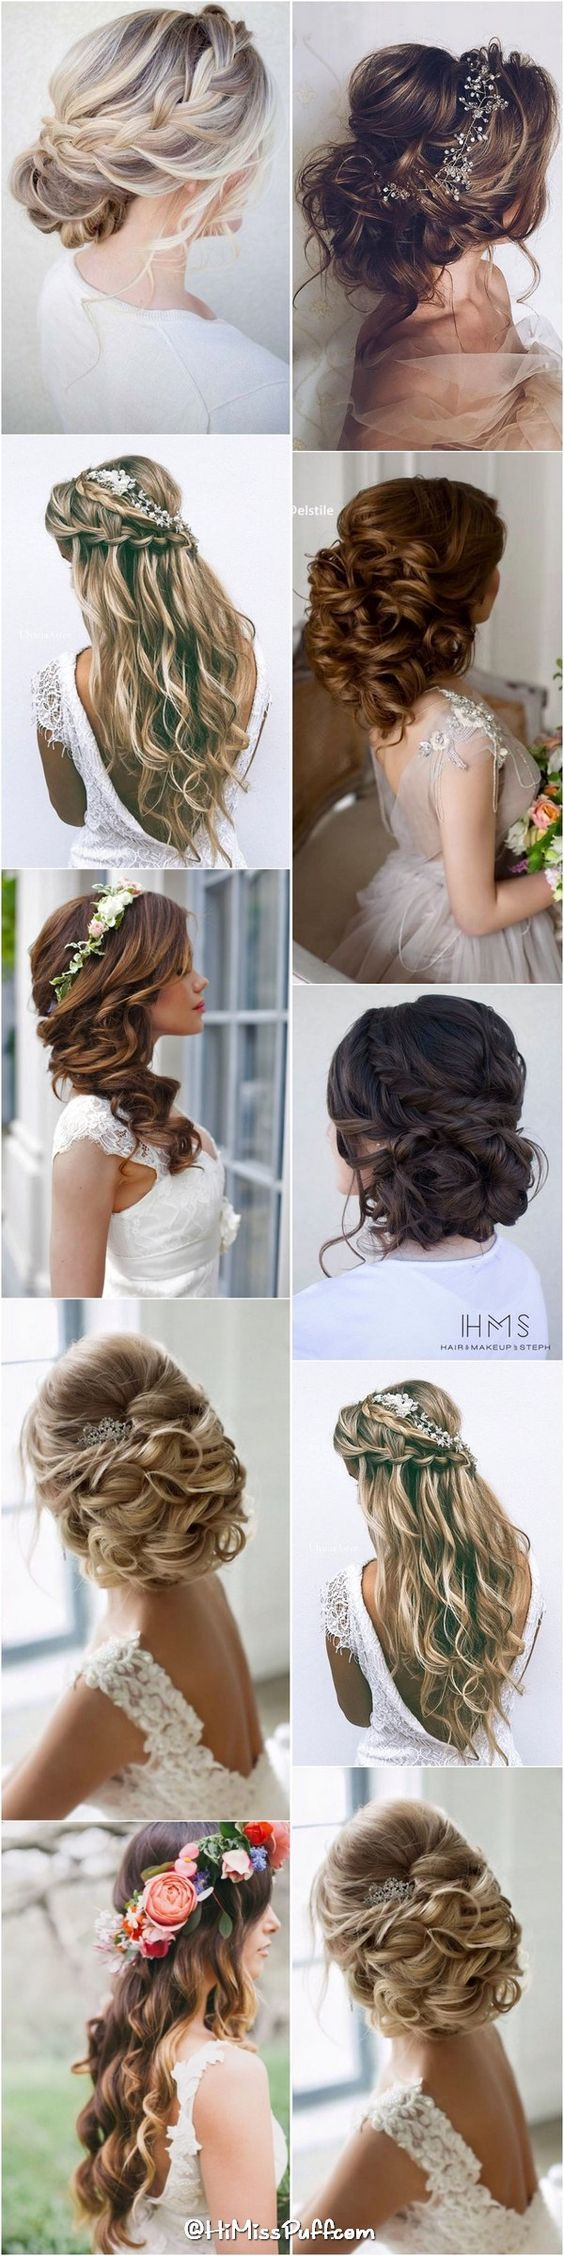 35 Romantic Wedding Hair Ideas You Will Love